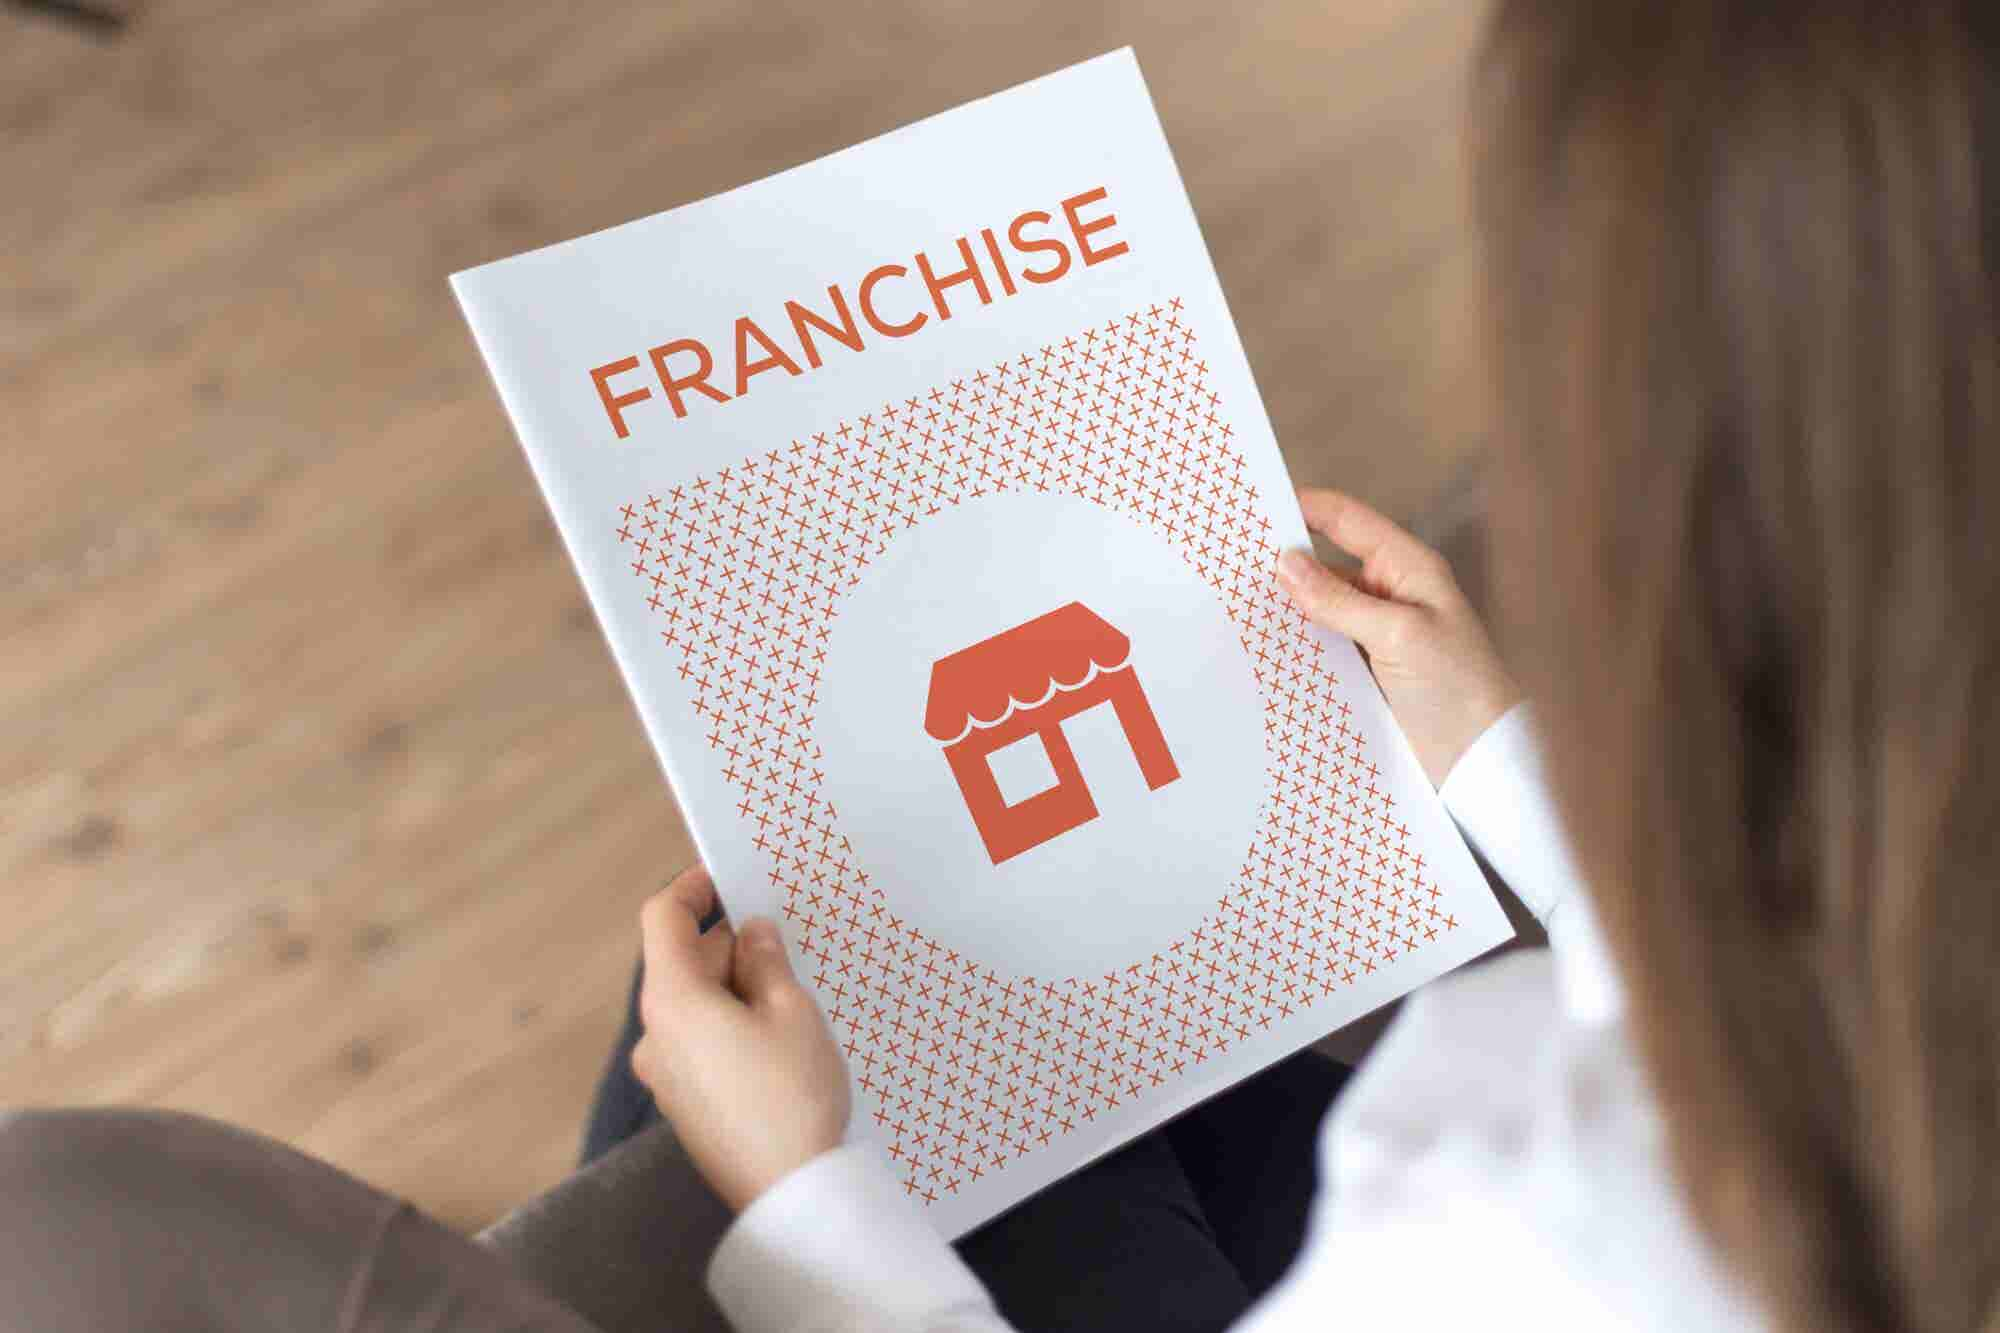 5 Affordable Franchises You Can Start for Less Than $10,000